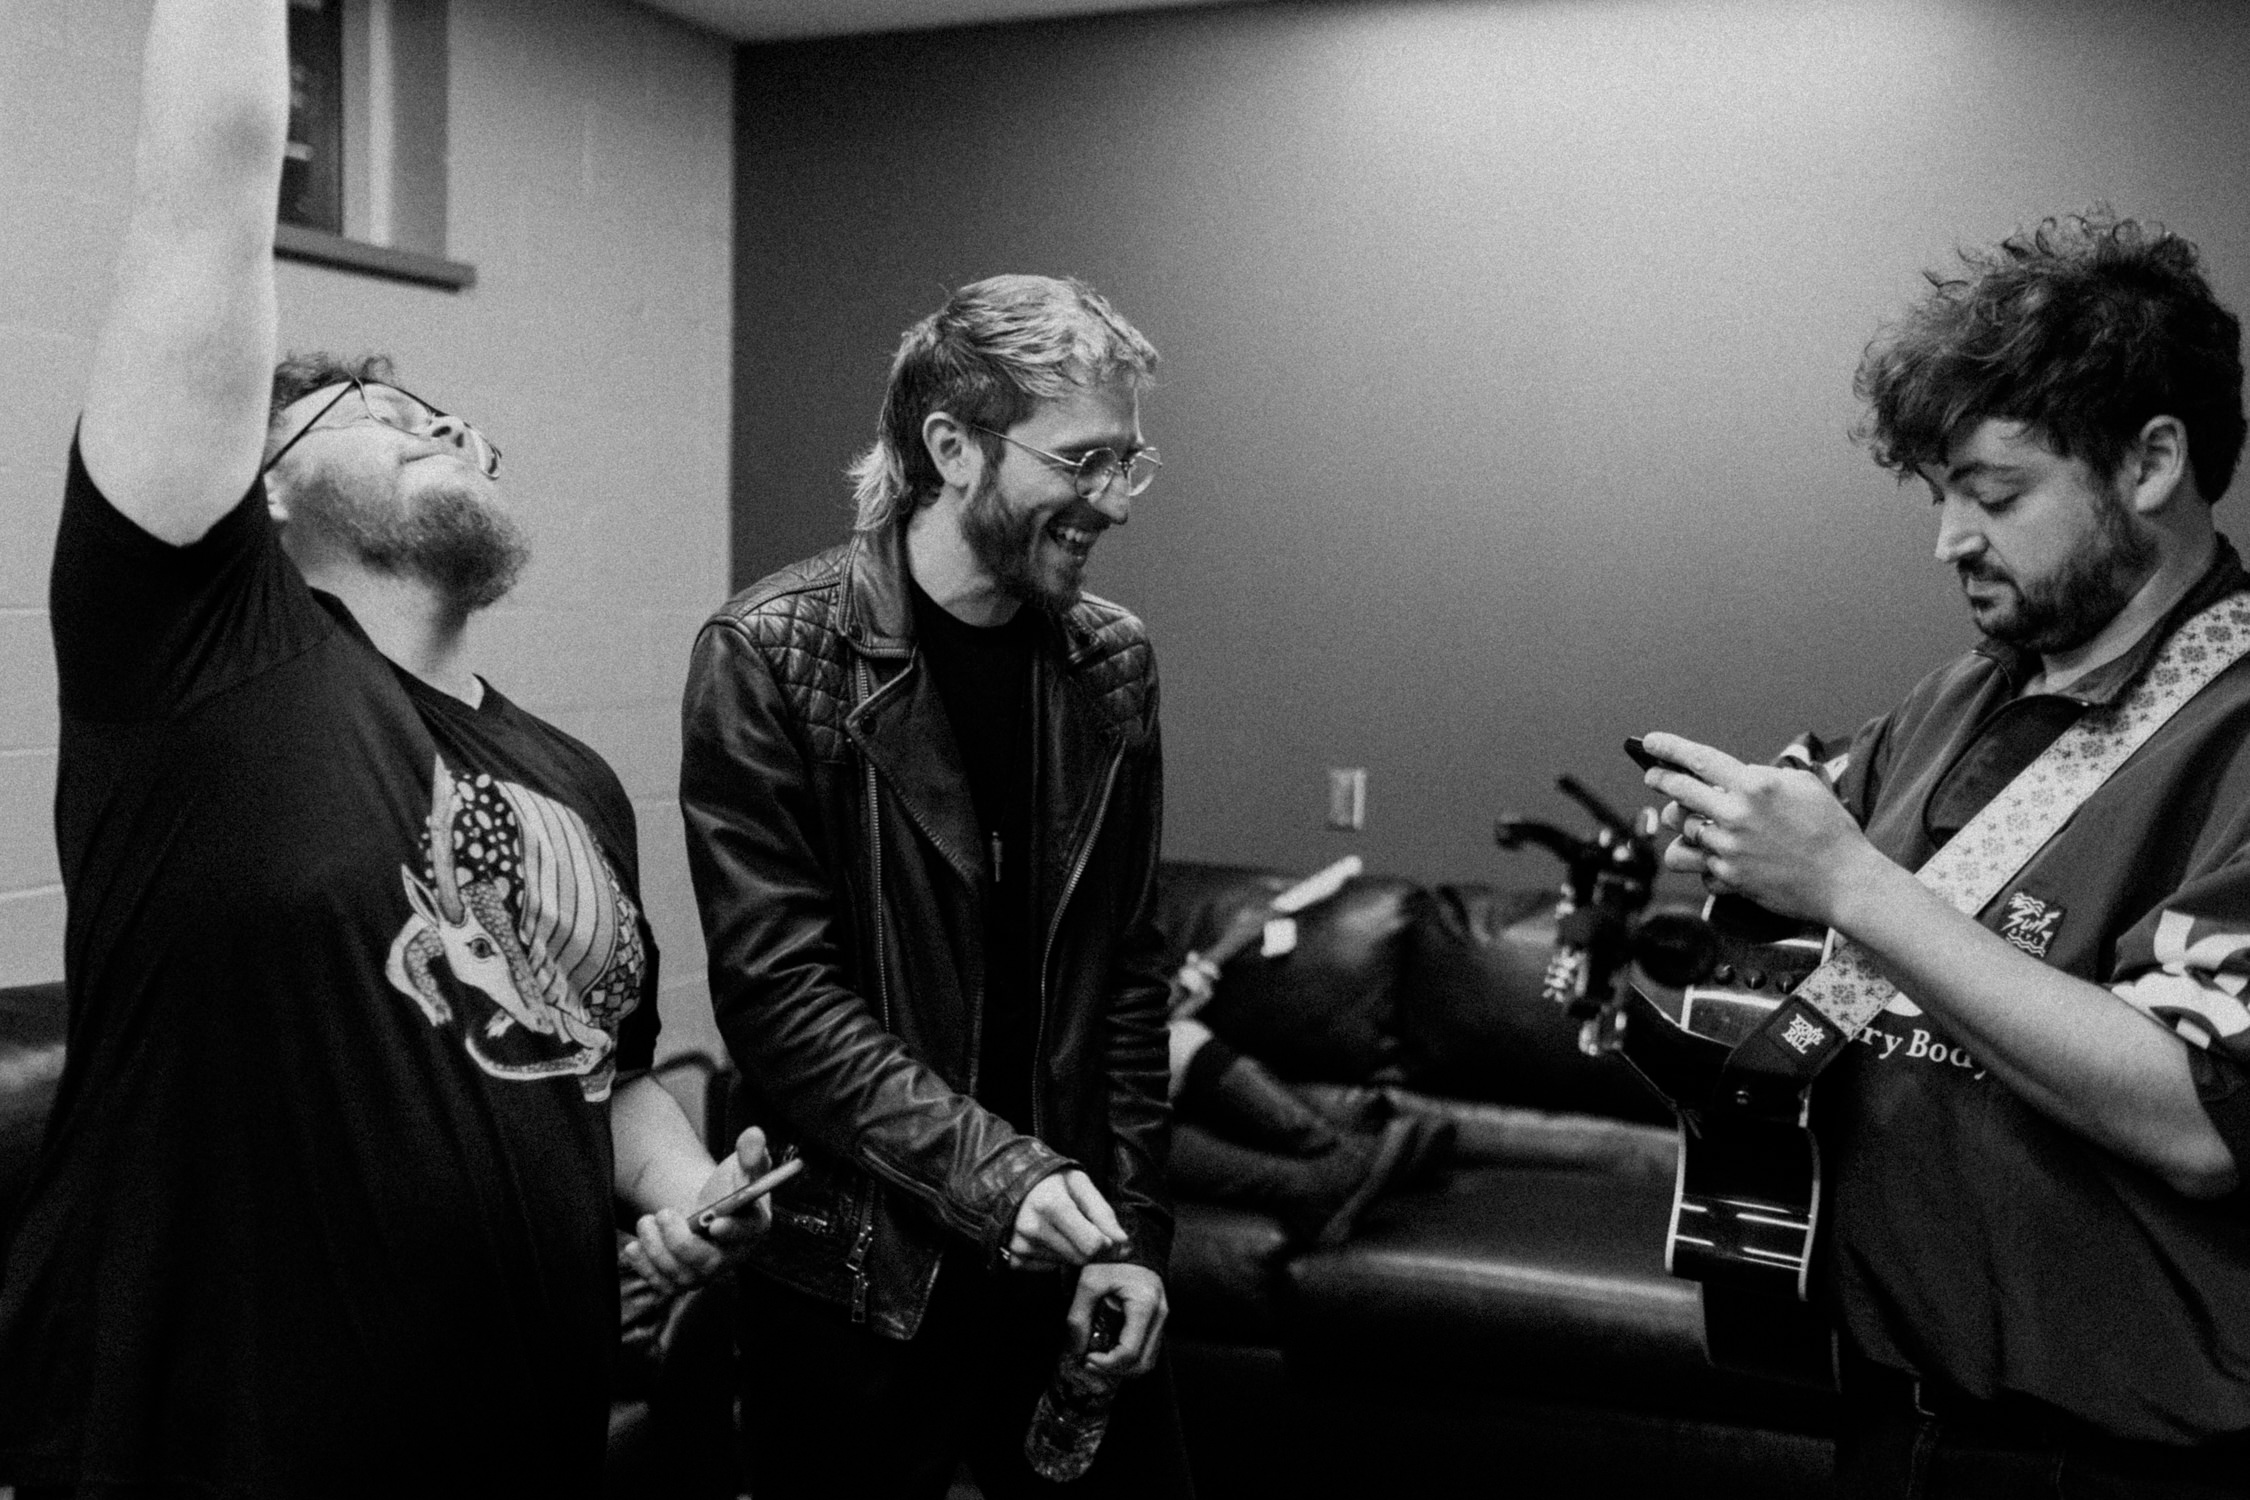 sean-nick-eli-tour-backstage-walk-the-moon-AnnaLeeMedia